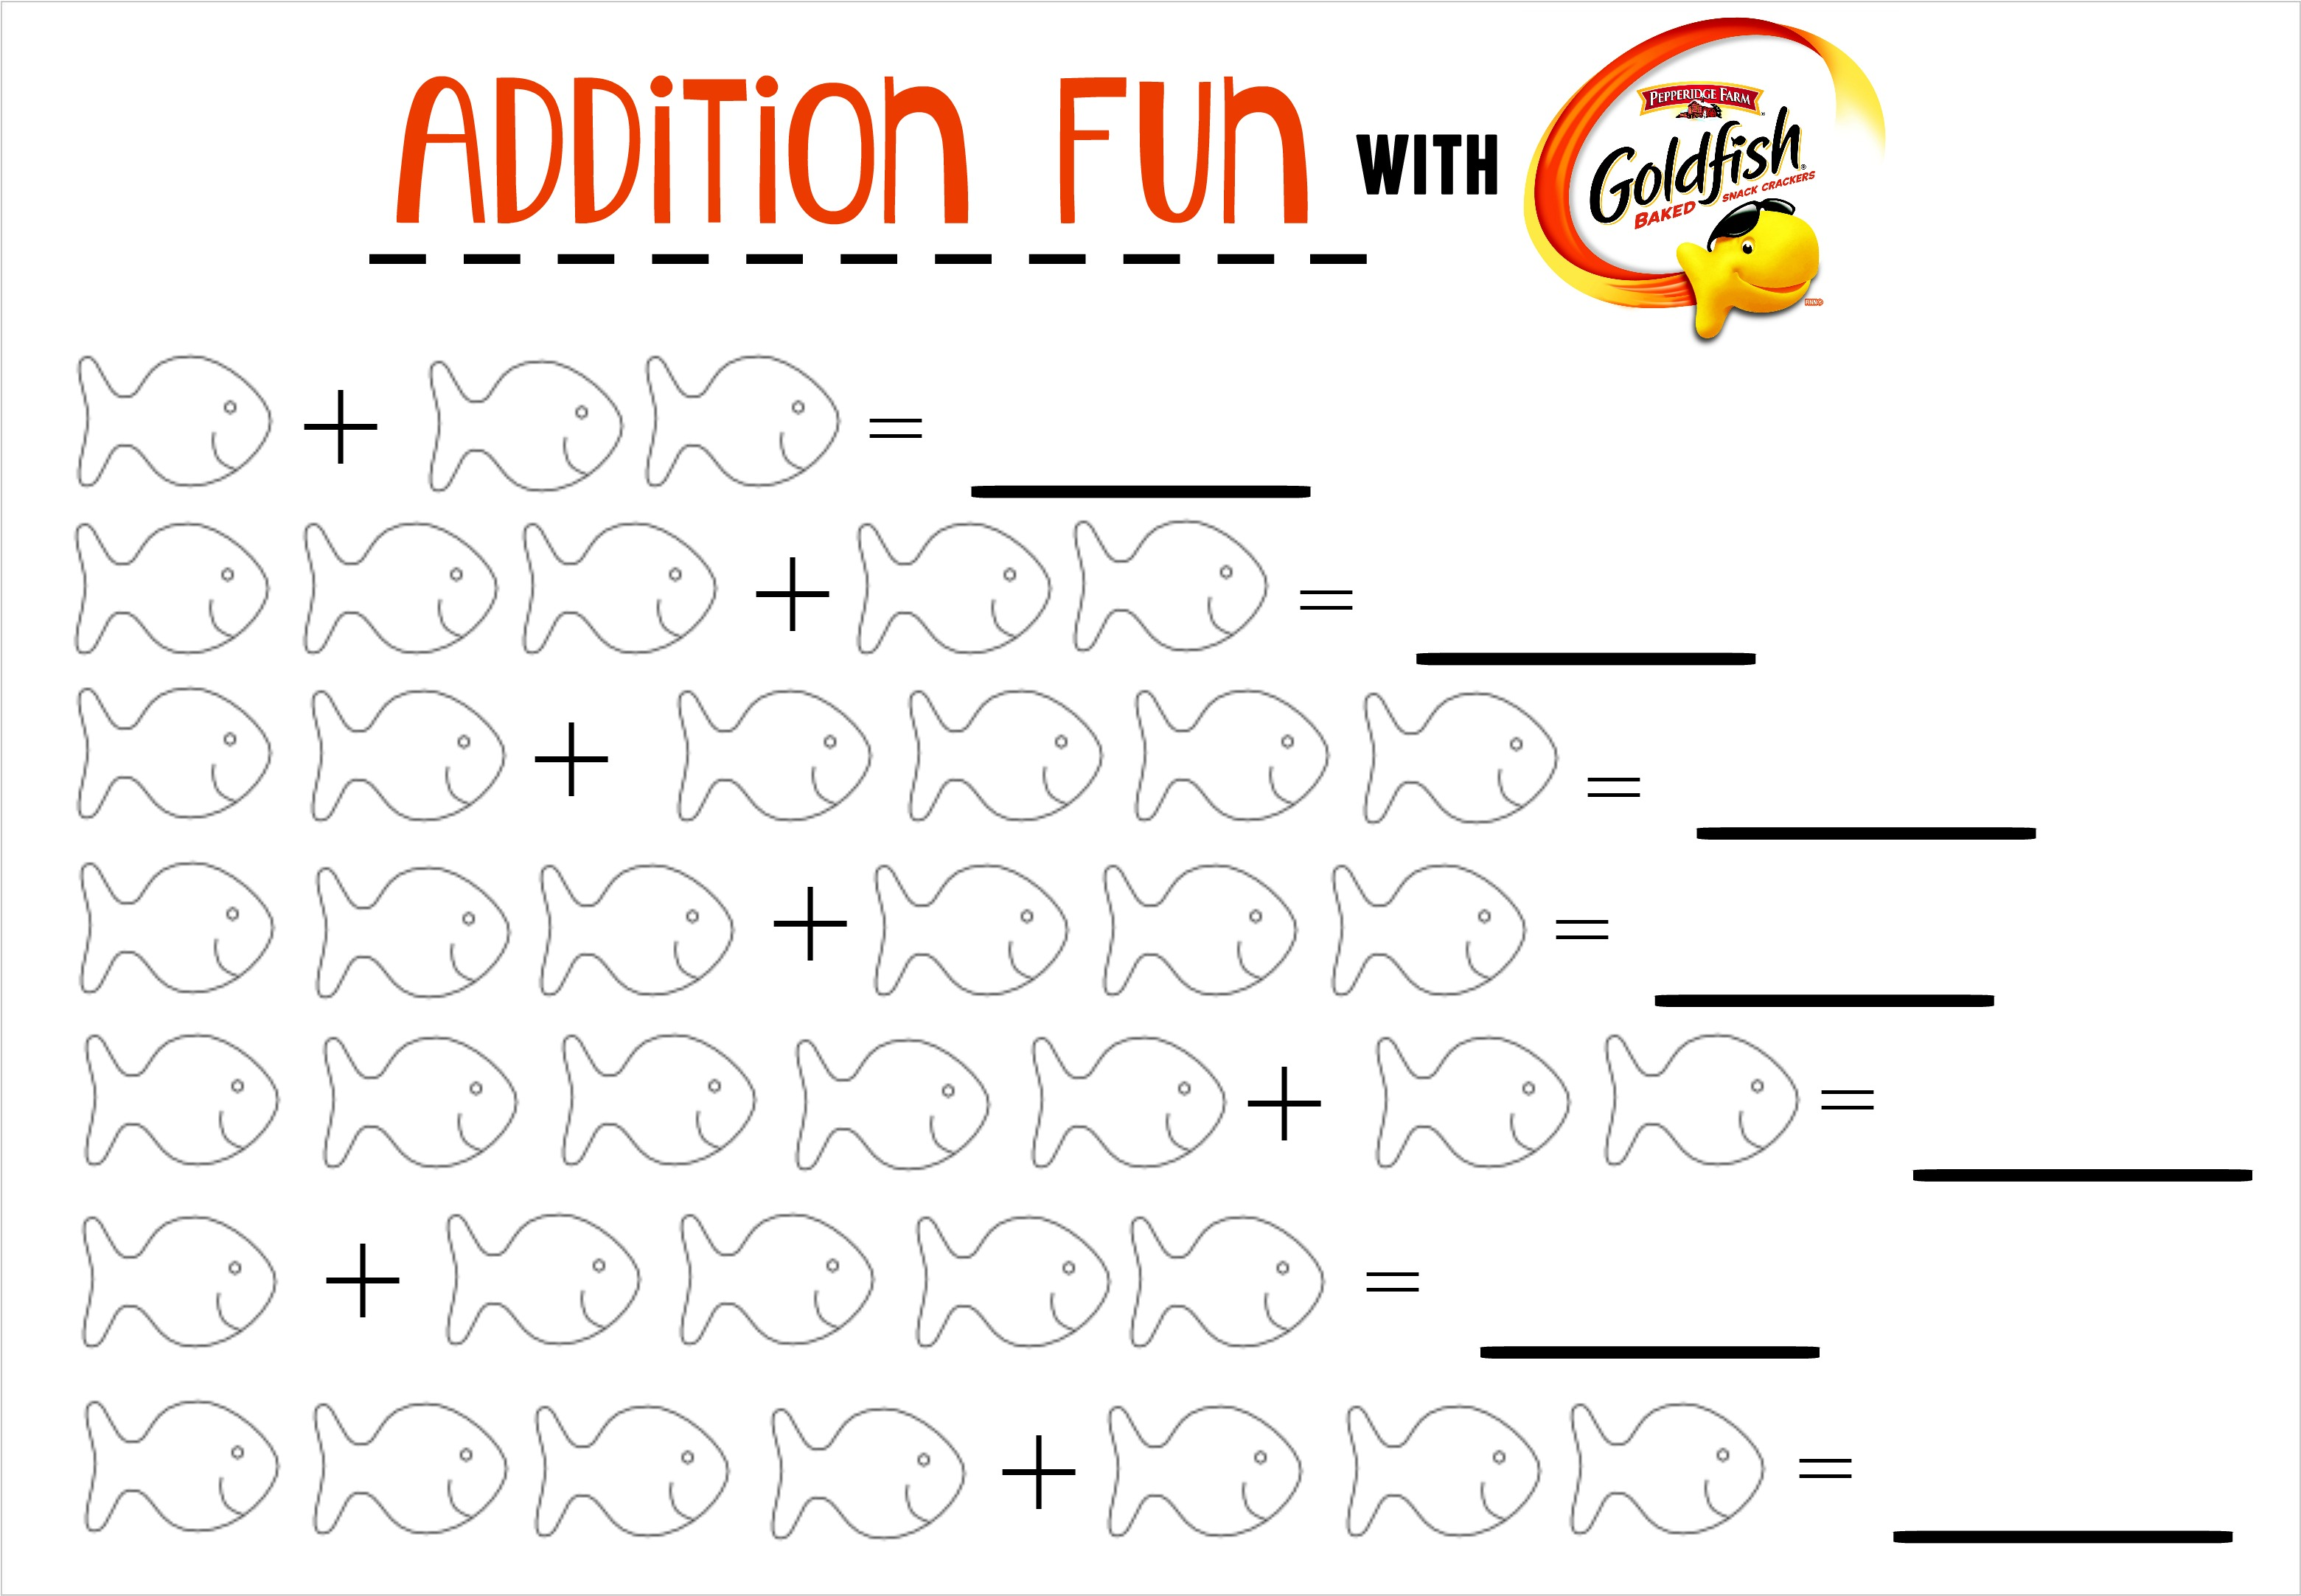 Addition Fun With Goldfish